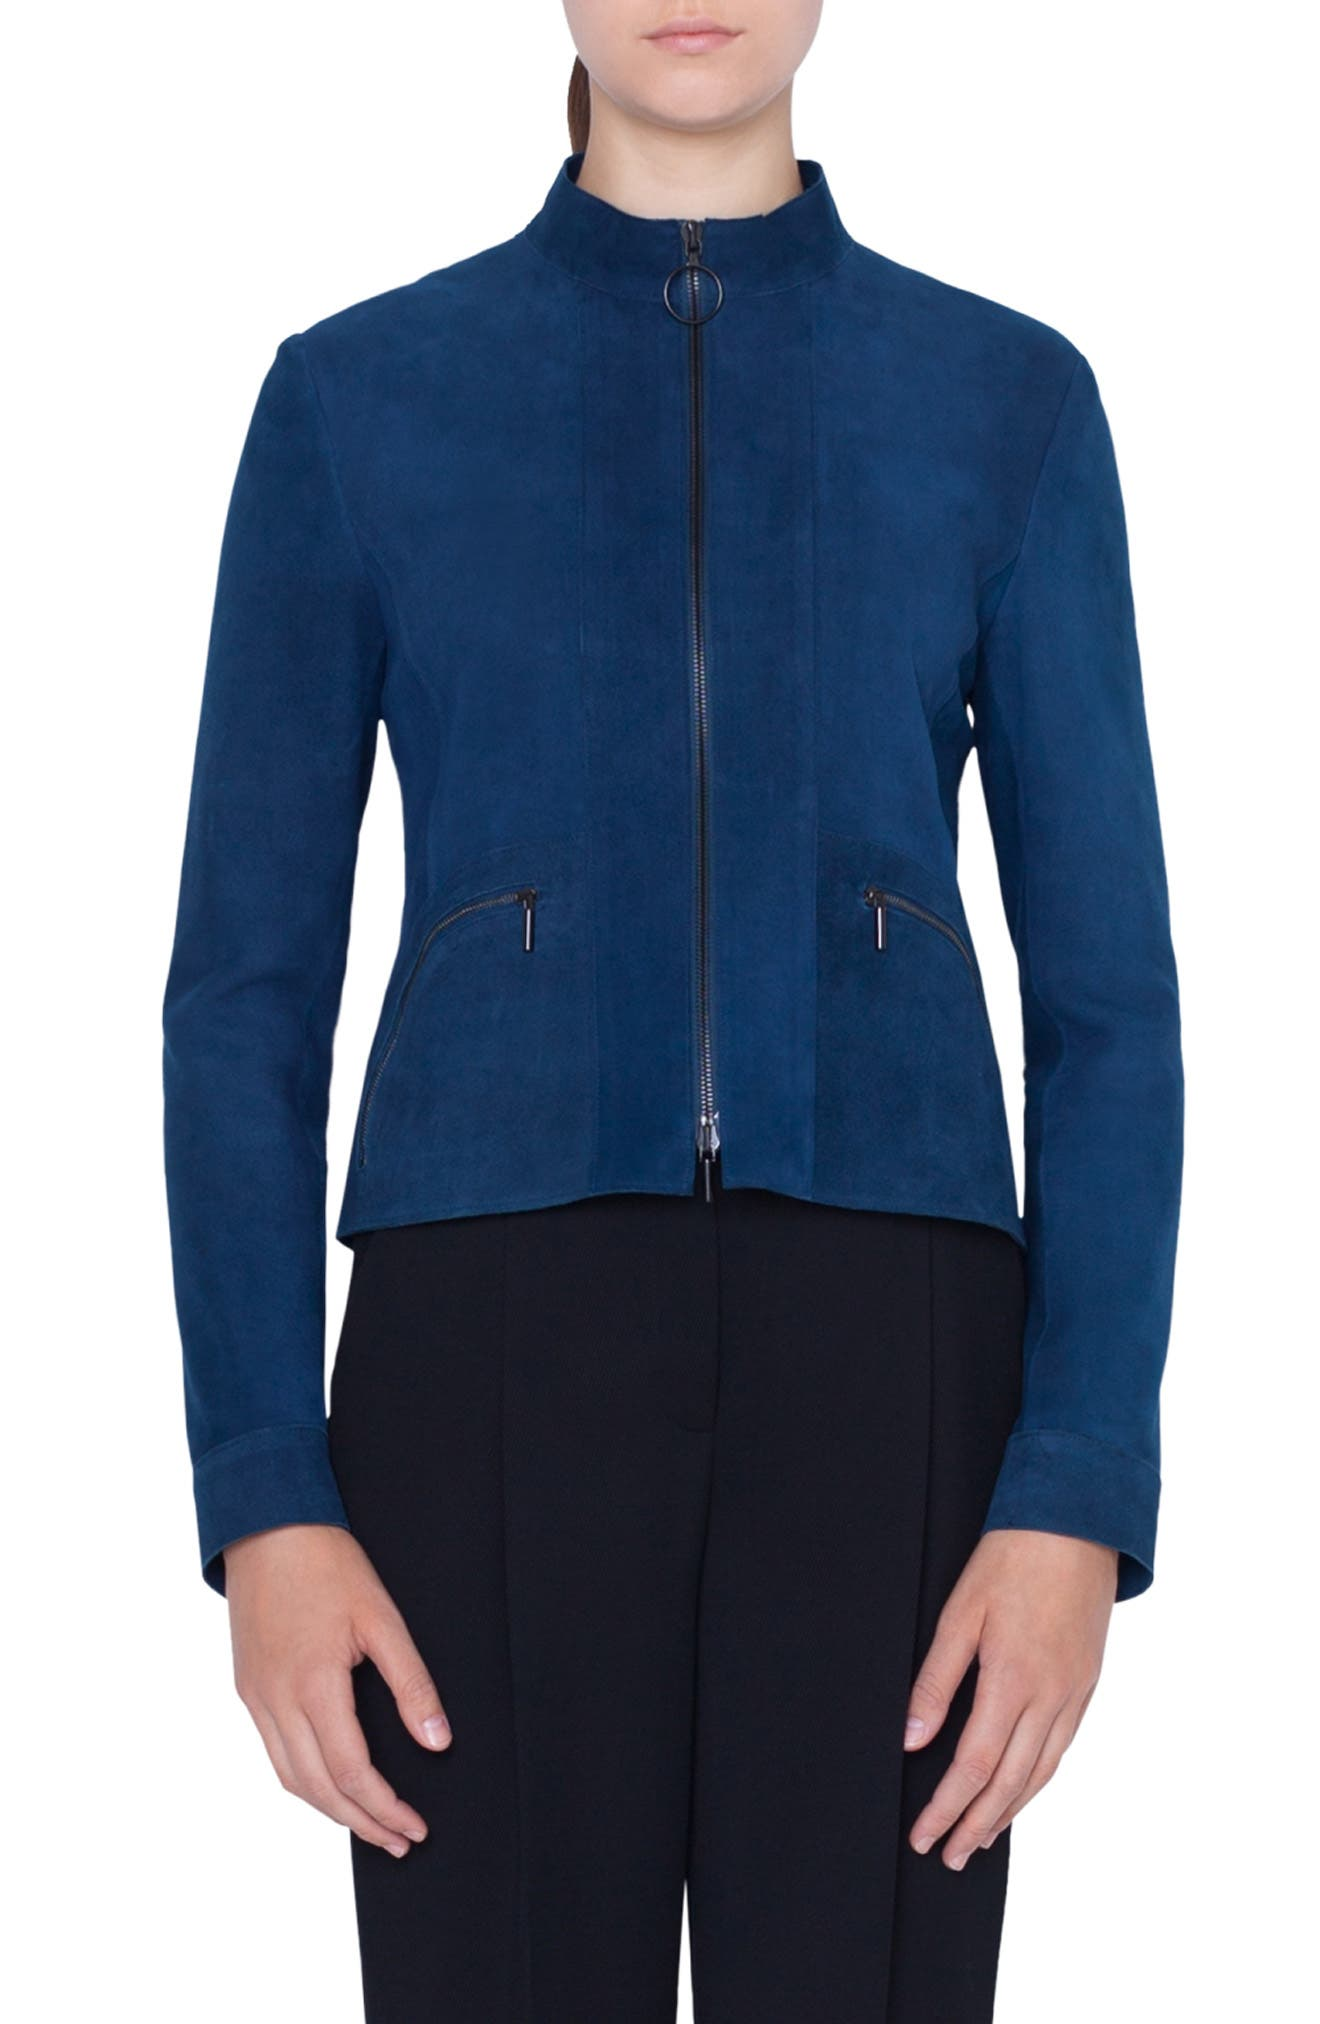 Zip-Front Stand-Collar Suede Jacket in Blu Mare